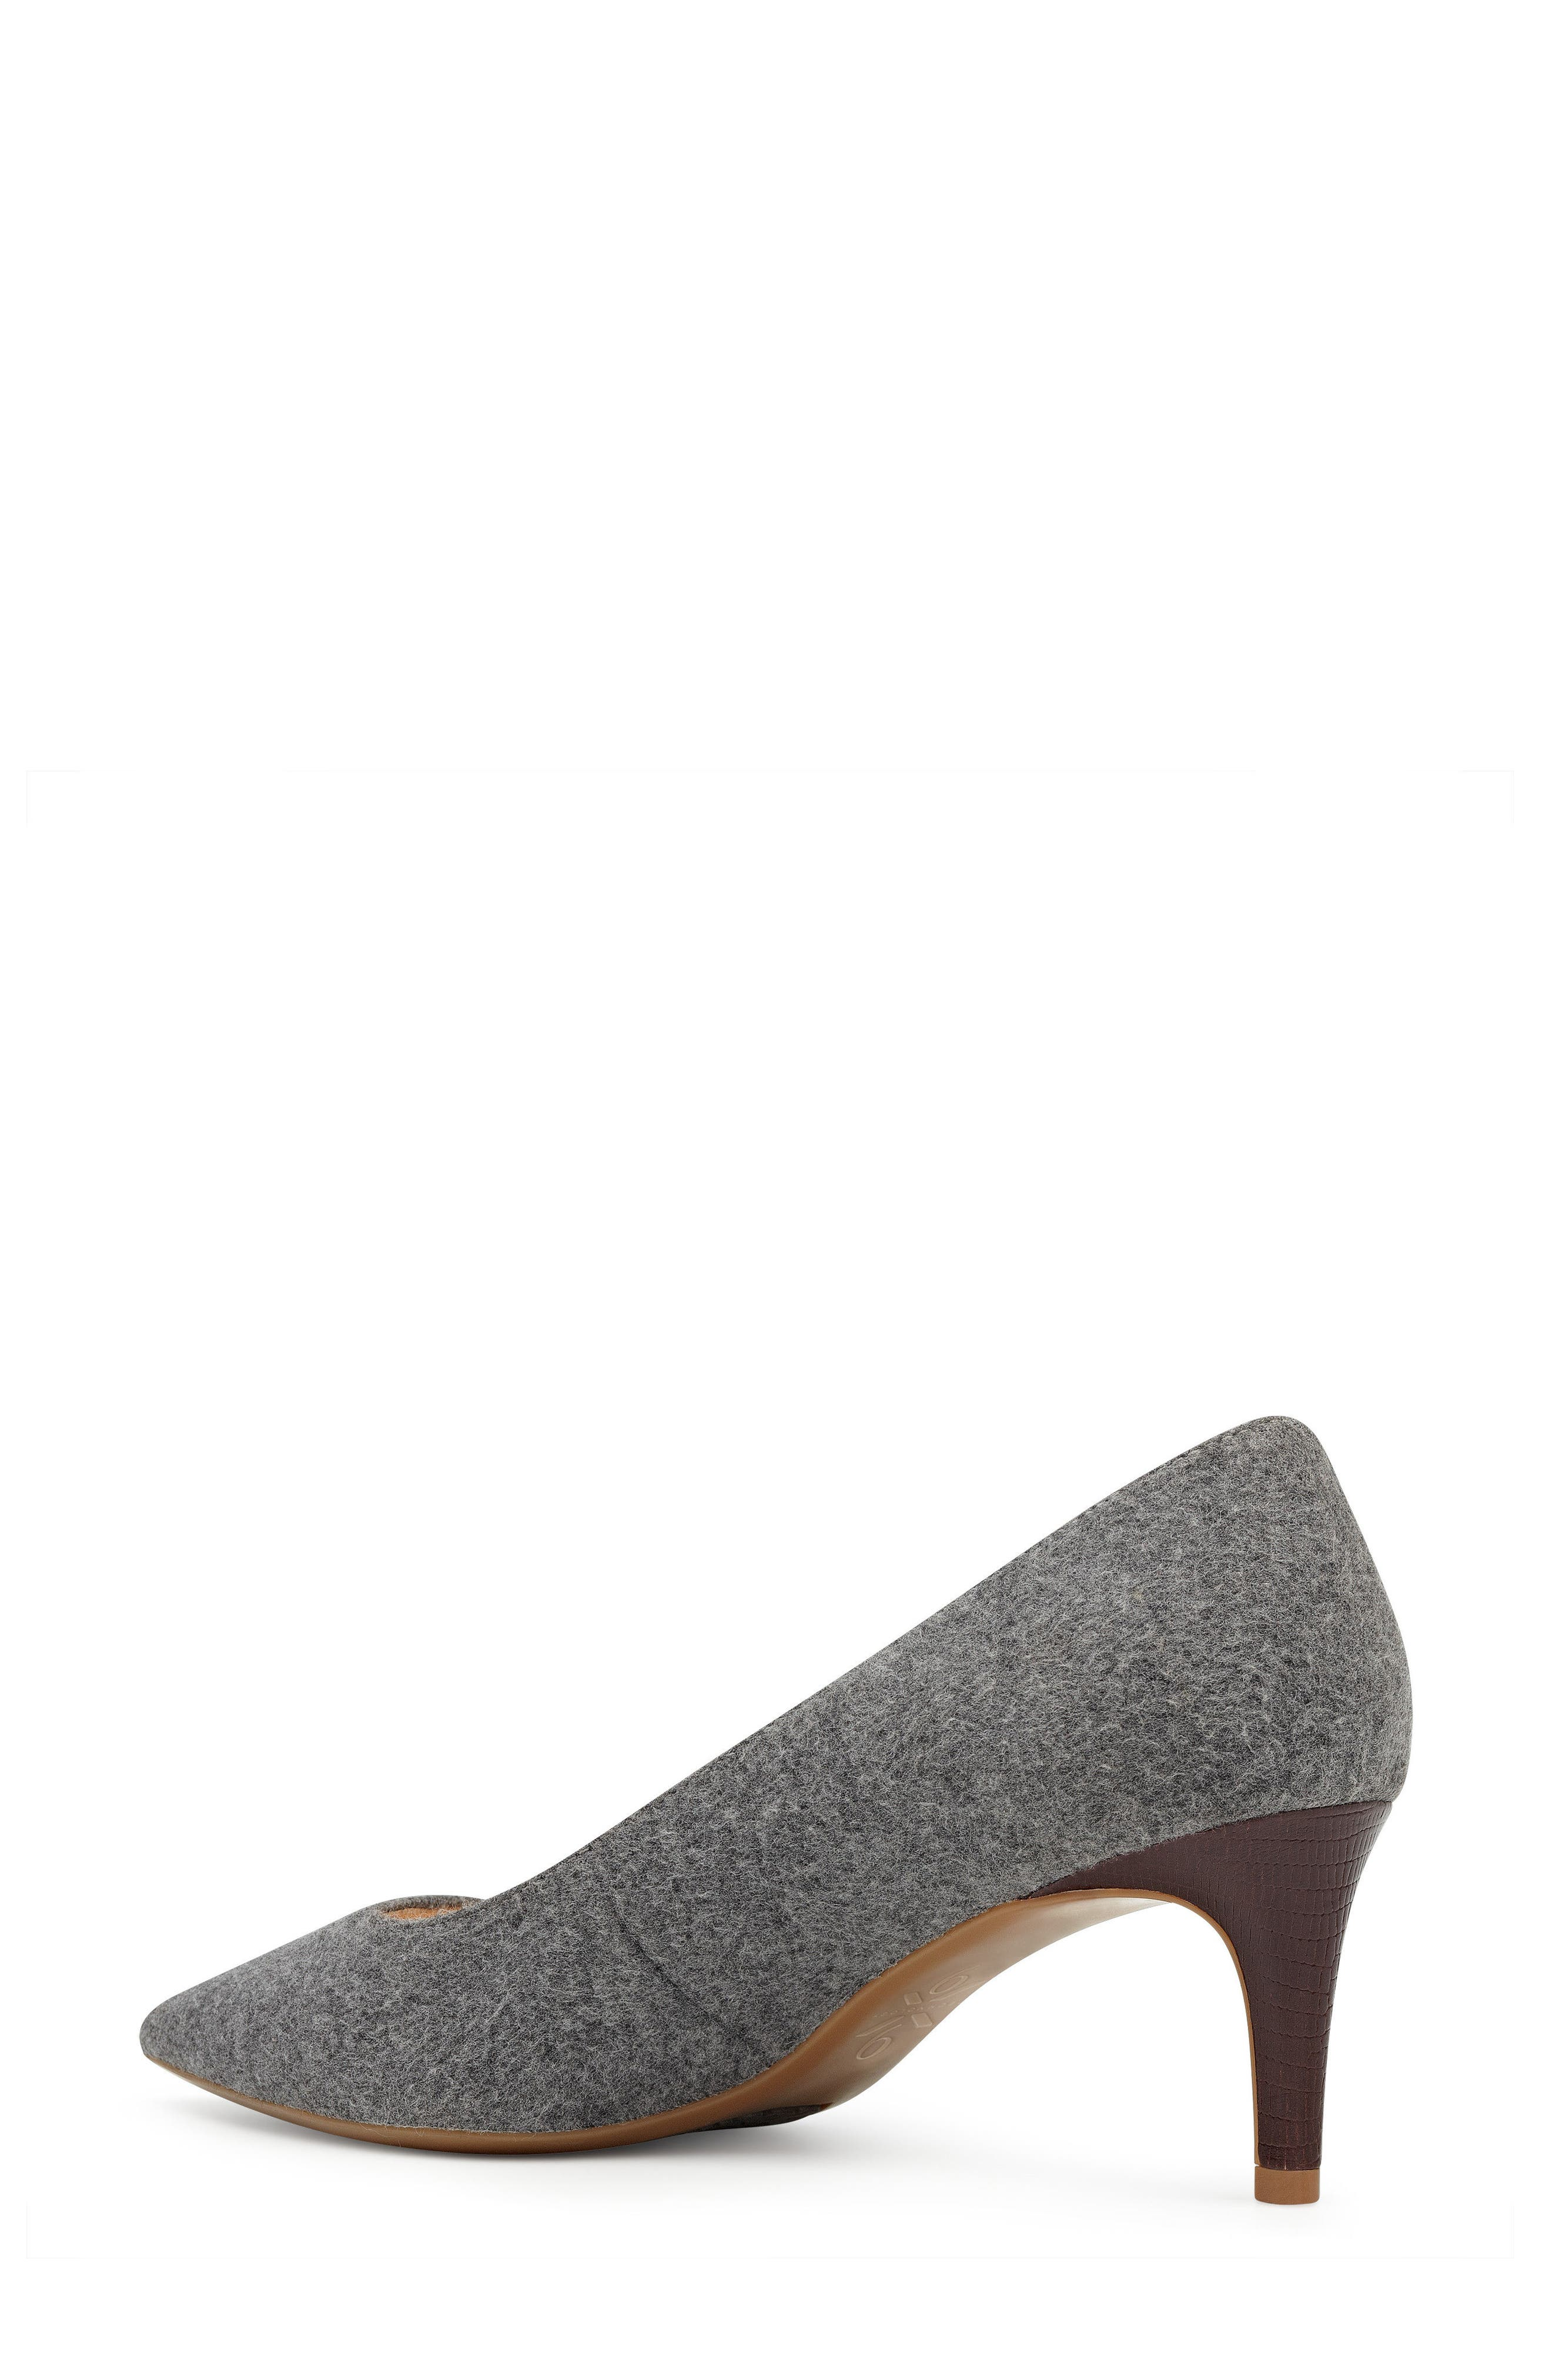 Soho Pointy Toe Pump,                             Alternate thumbnail 16, color,